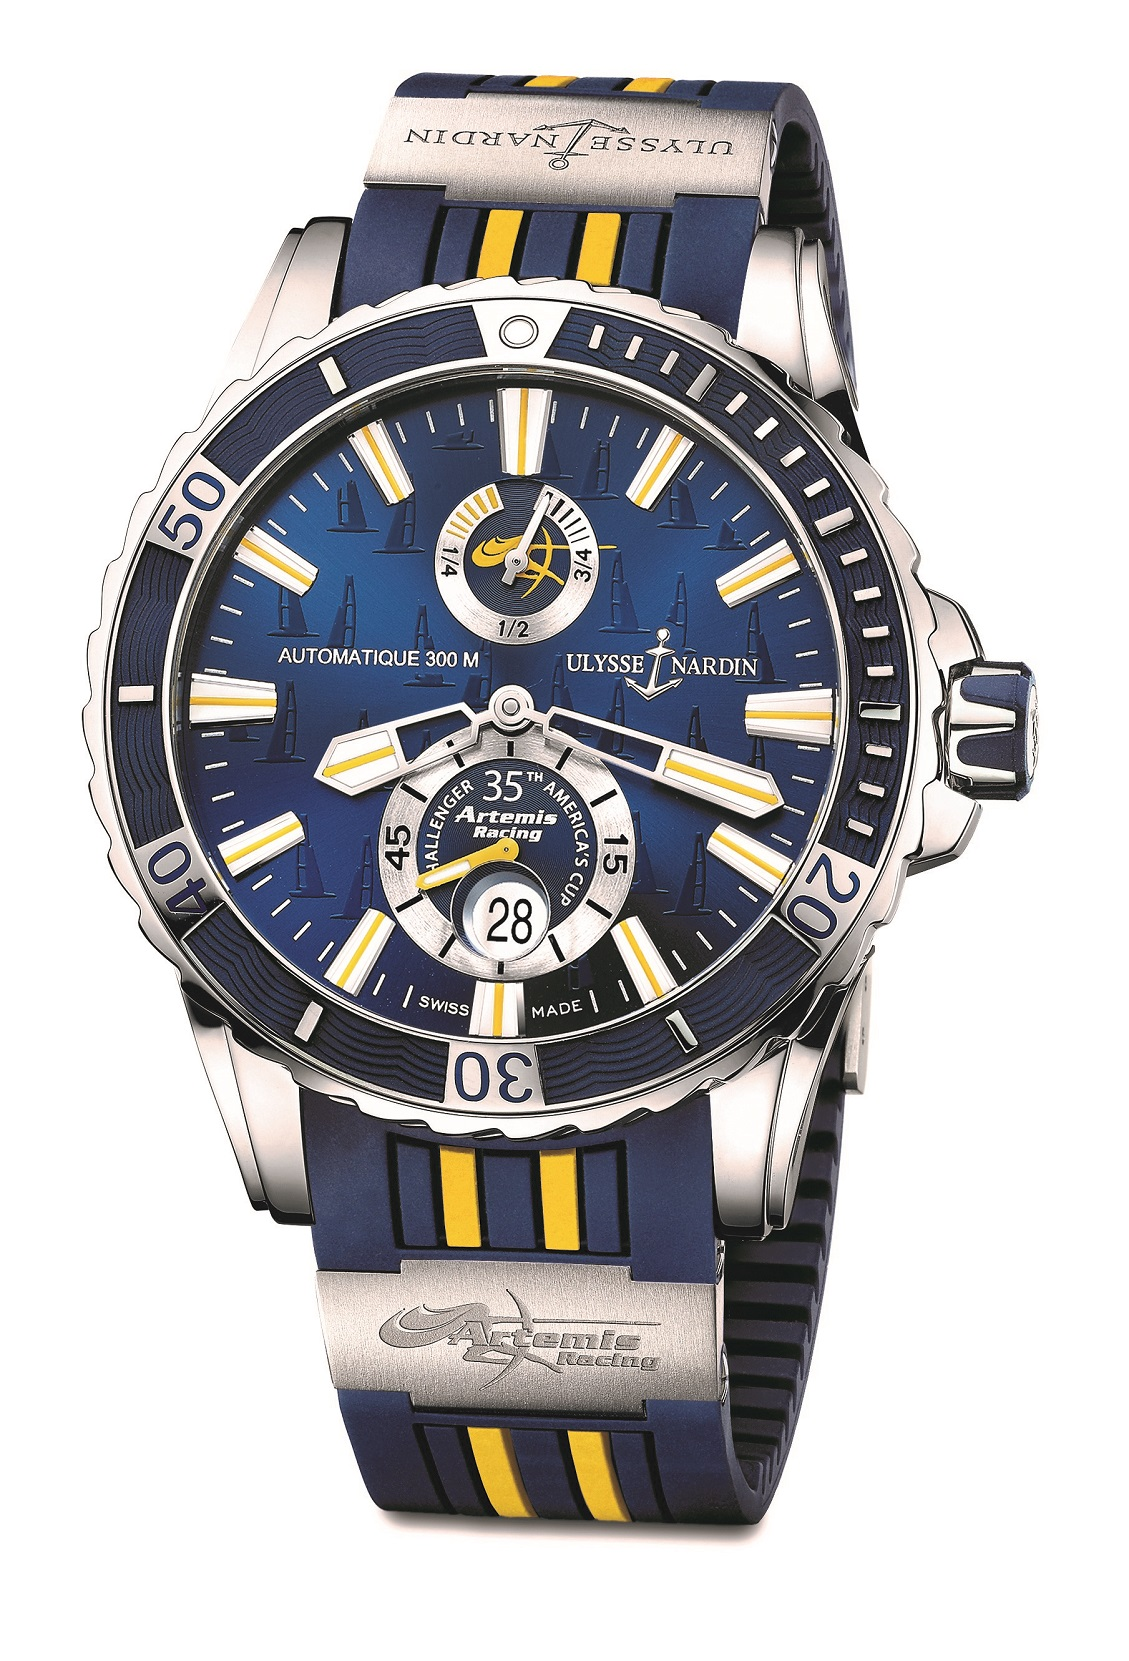 Ulysse Nardin 2016 Watches